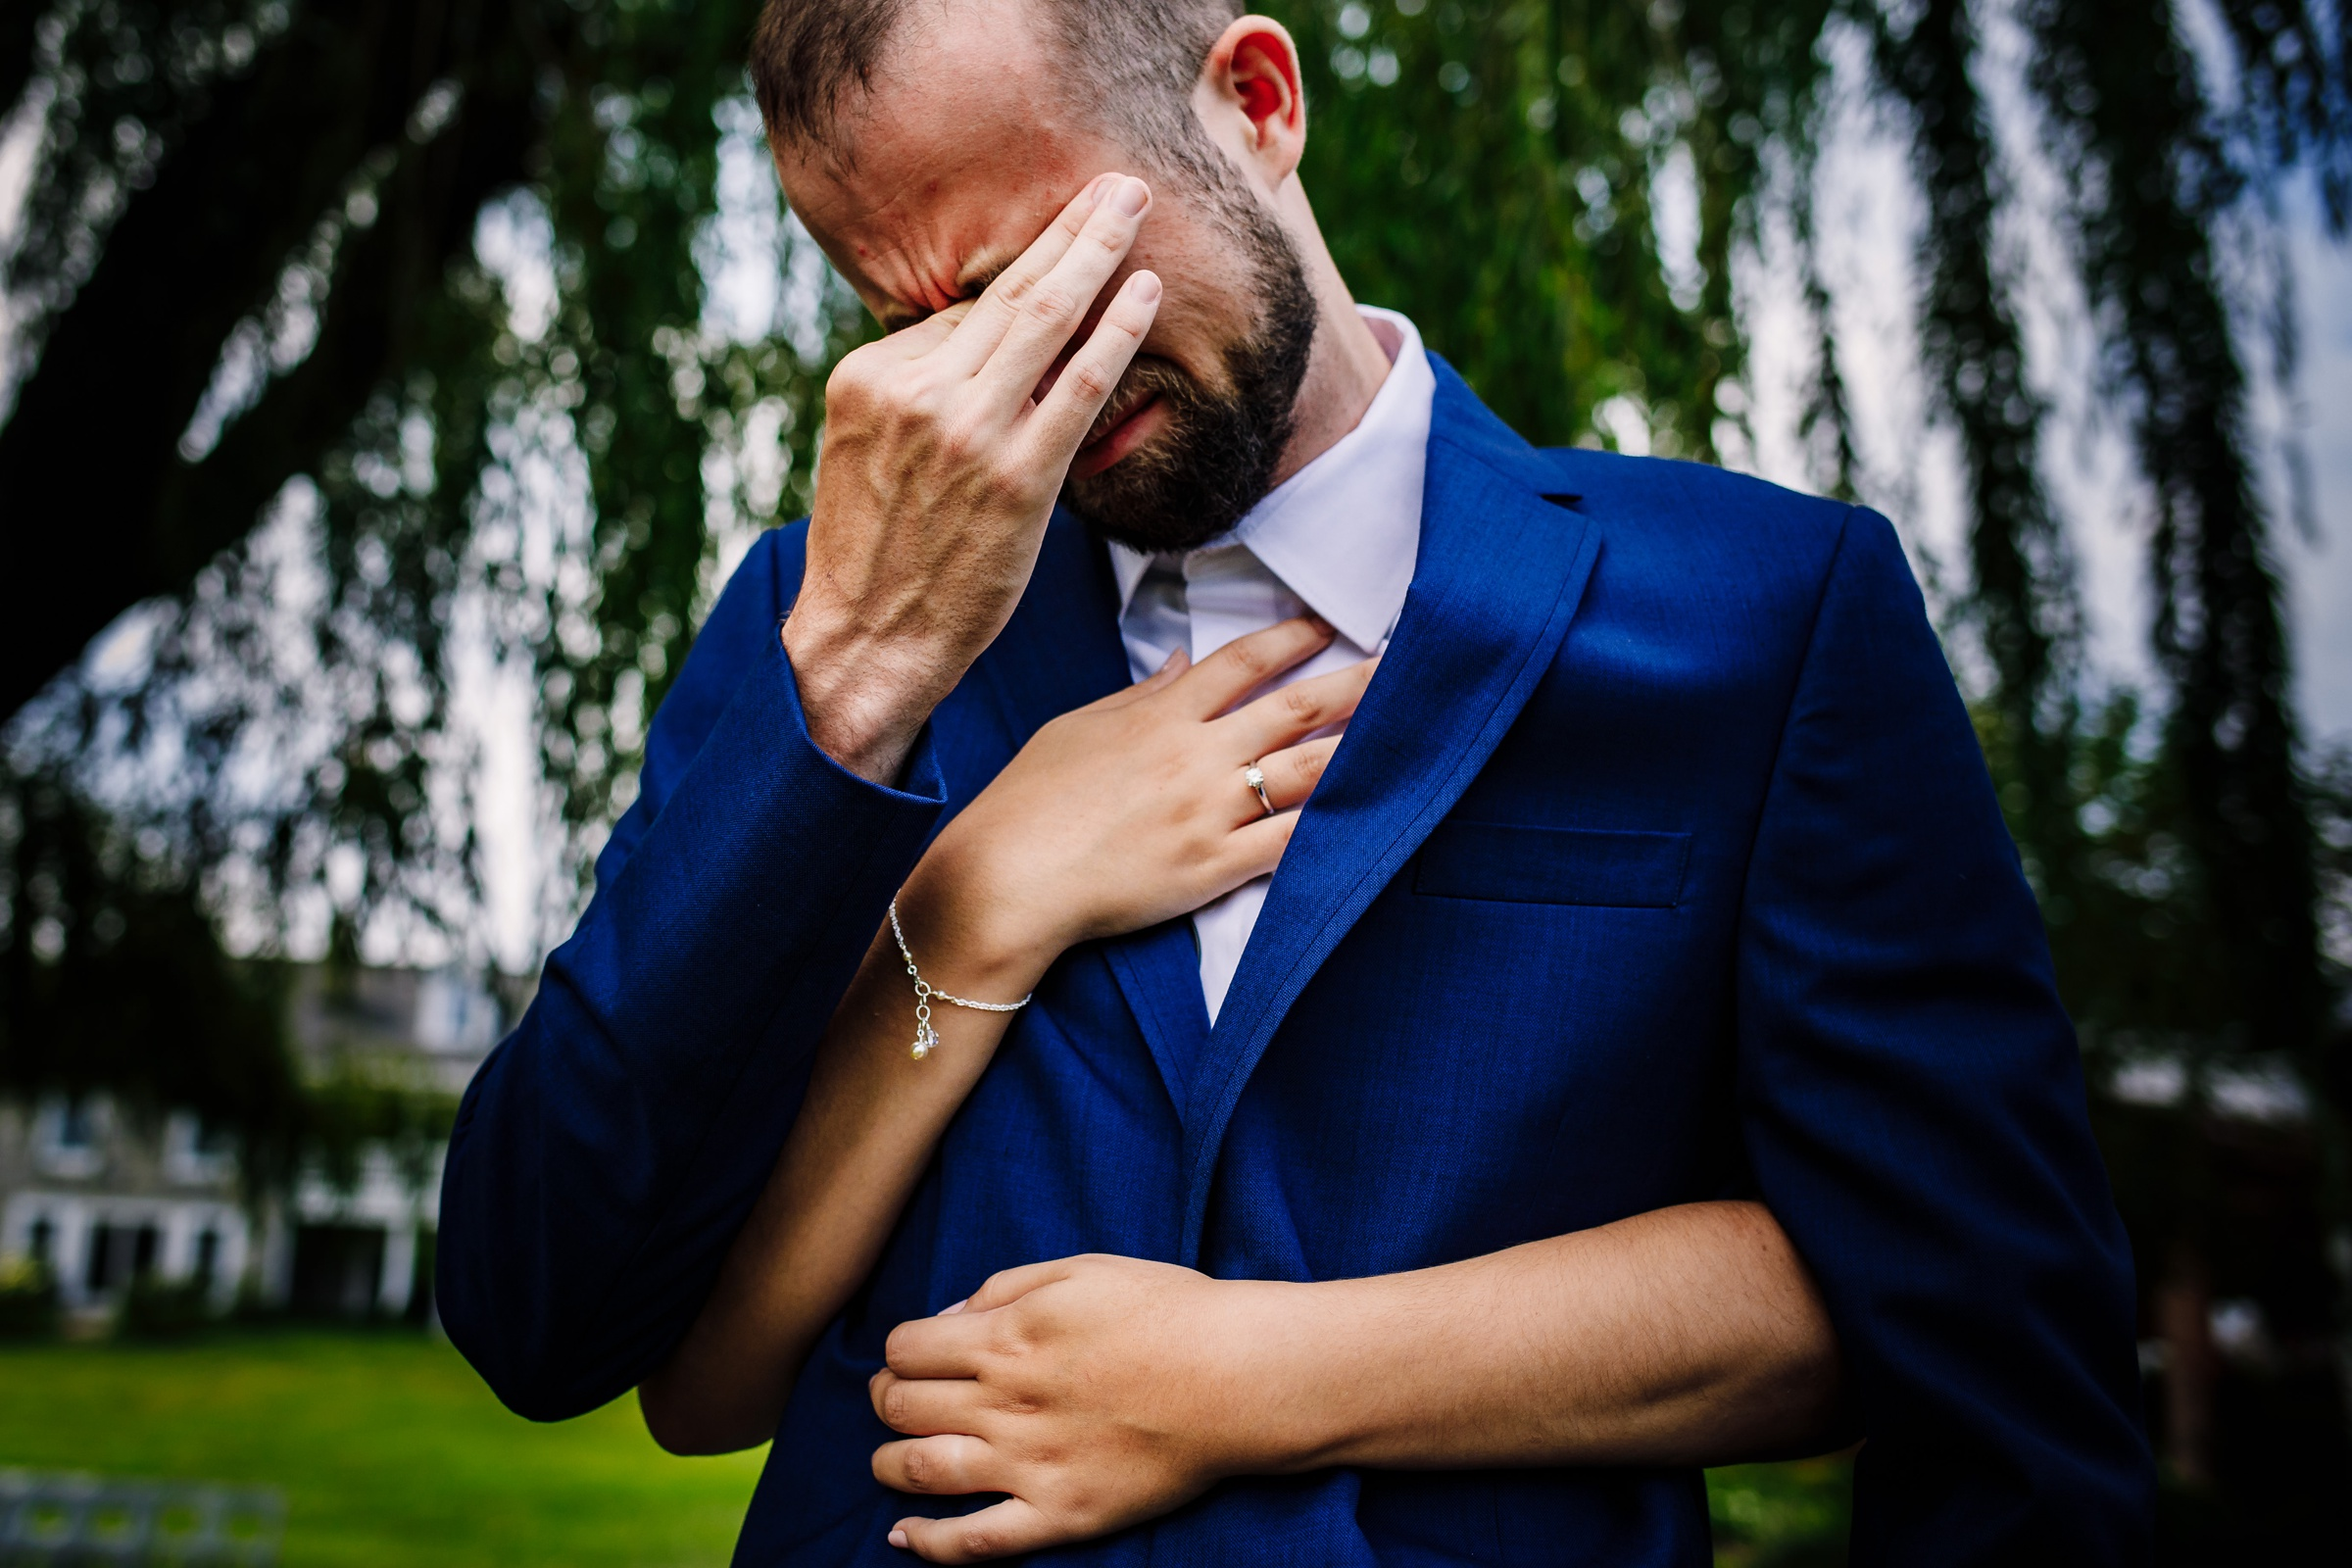 Groom gets emotional during first look - photo by Photography by Brea